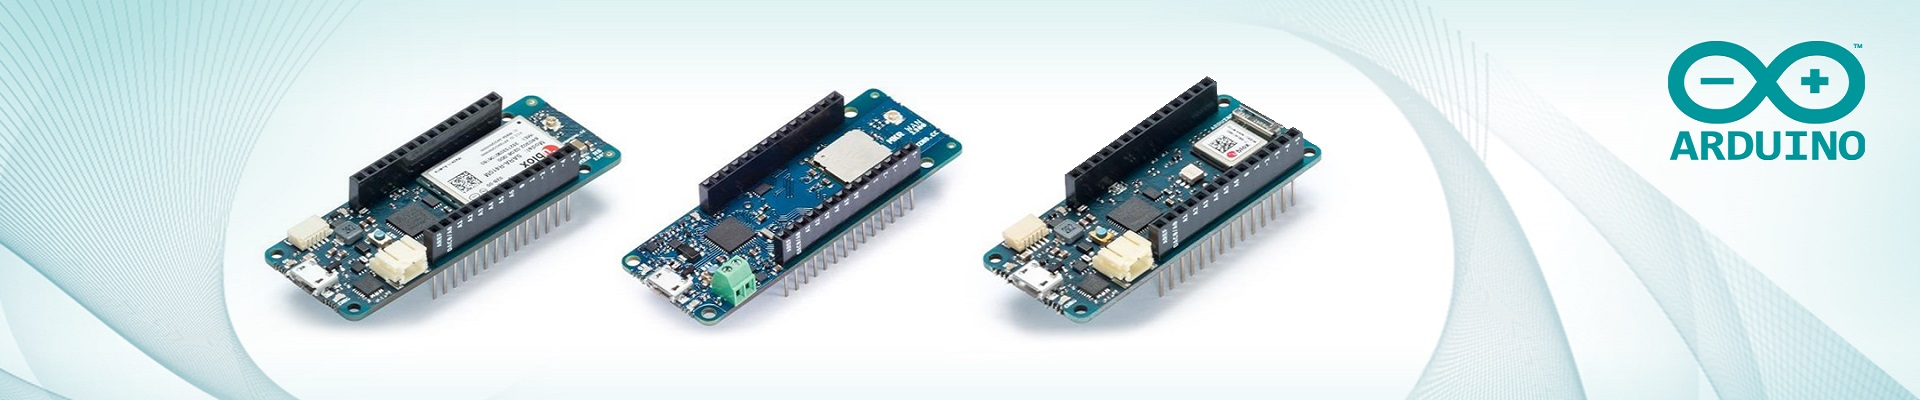 Arduino Journey Continues | Mouser